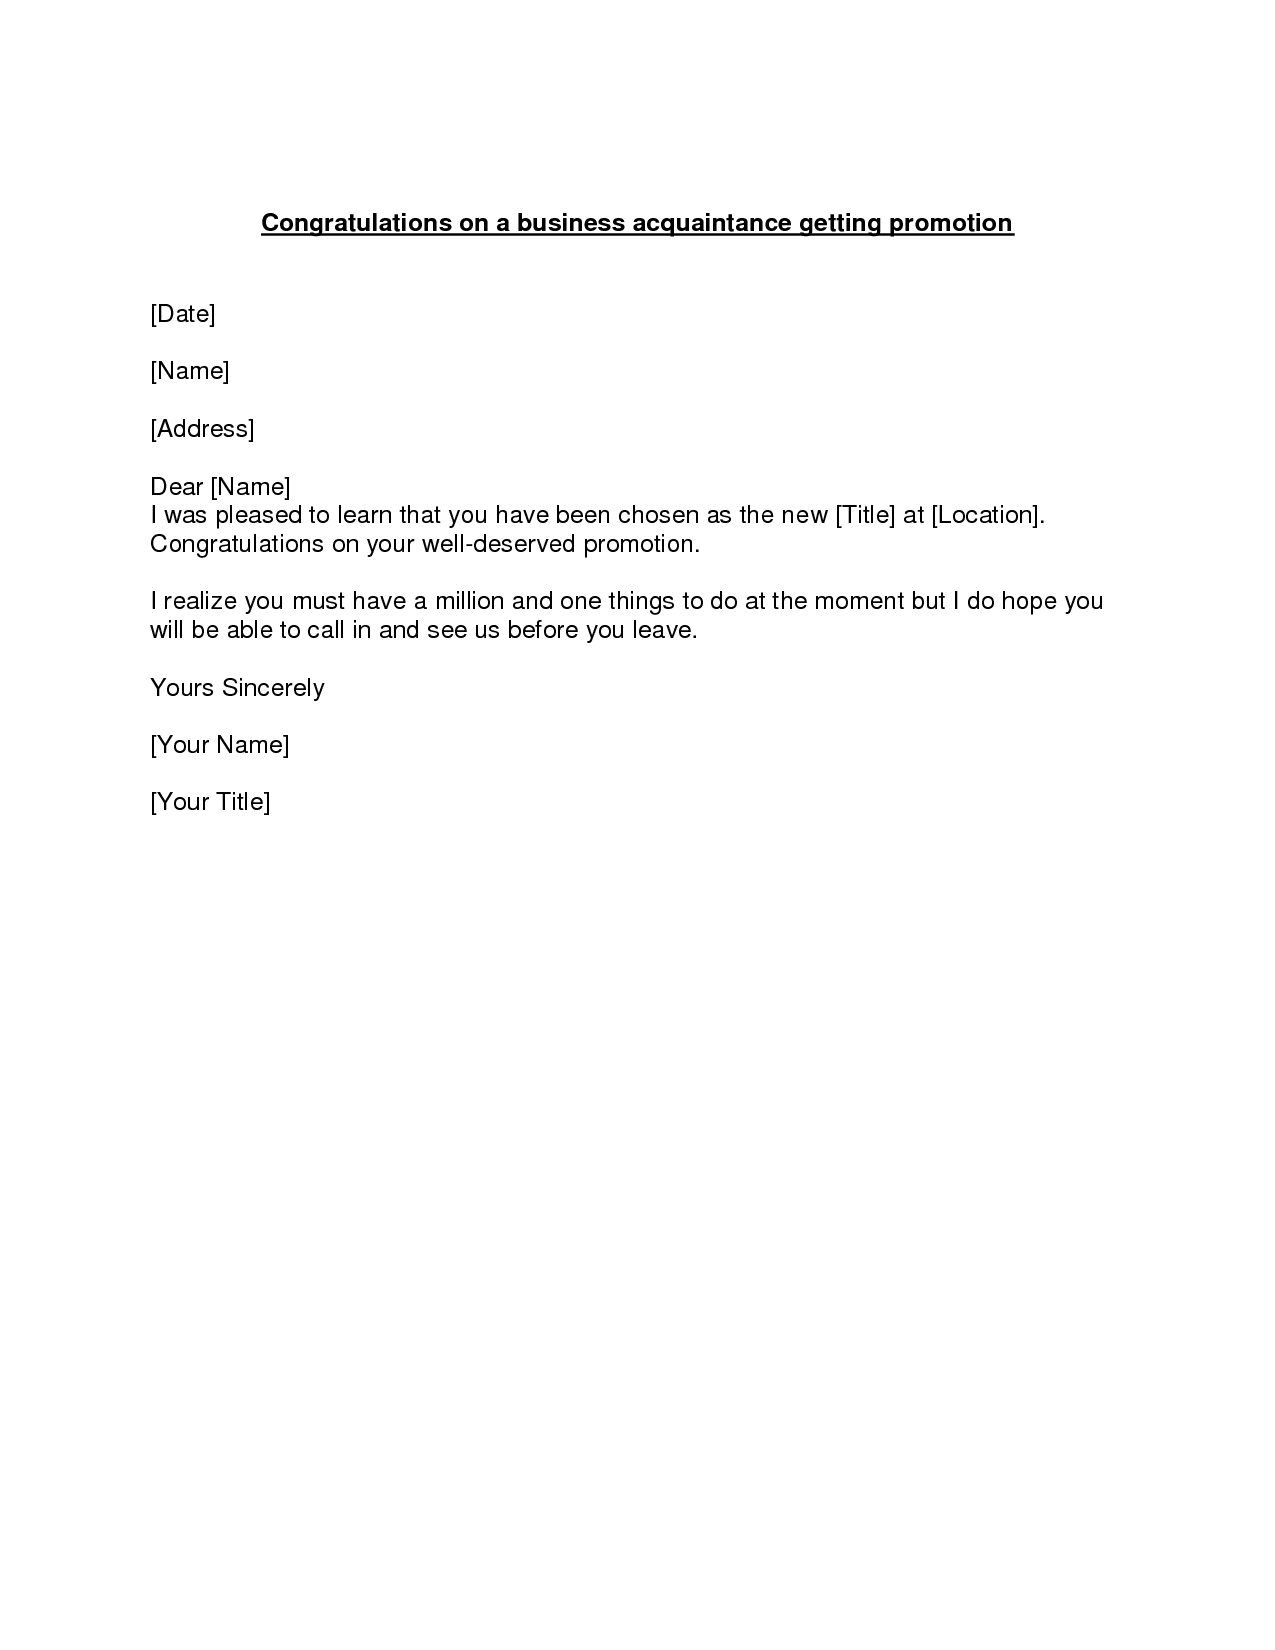 Norwest Financial Promotion to Branch Manager Congratulations Letter …